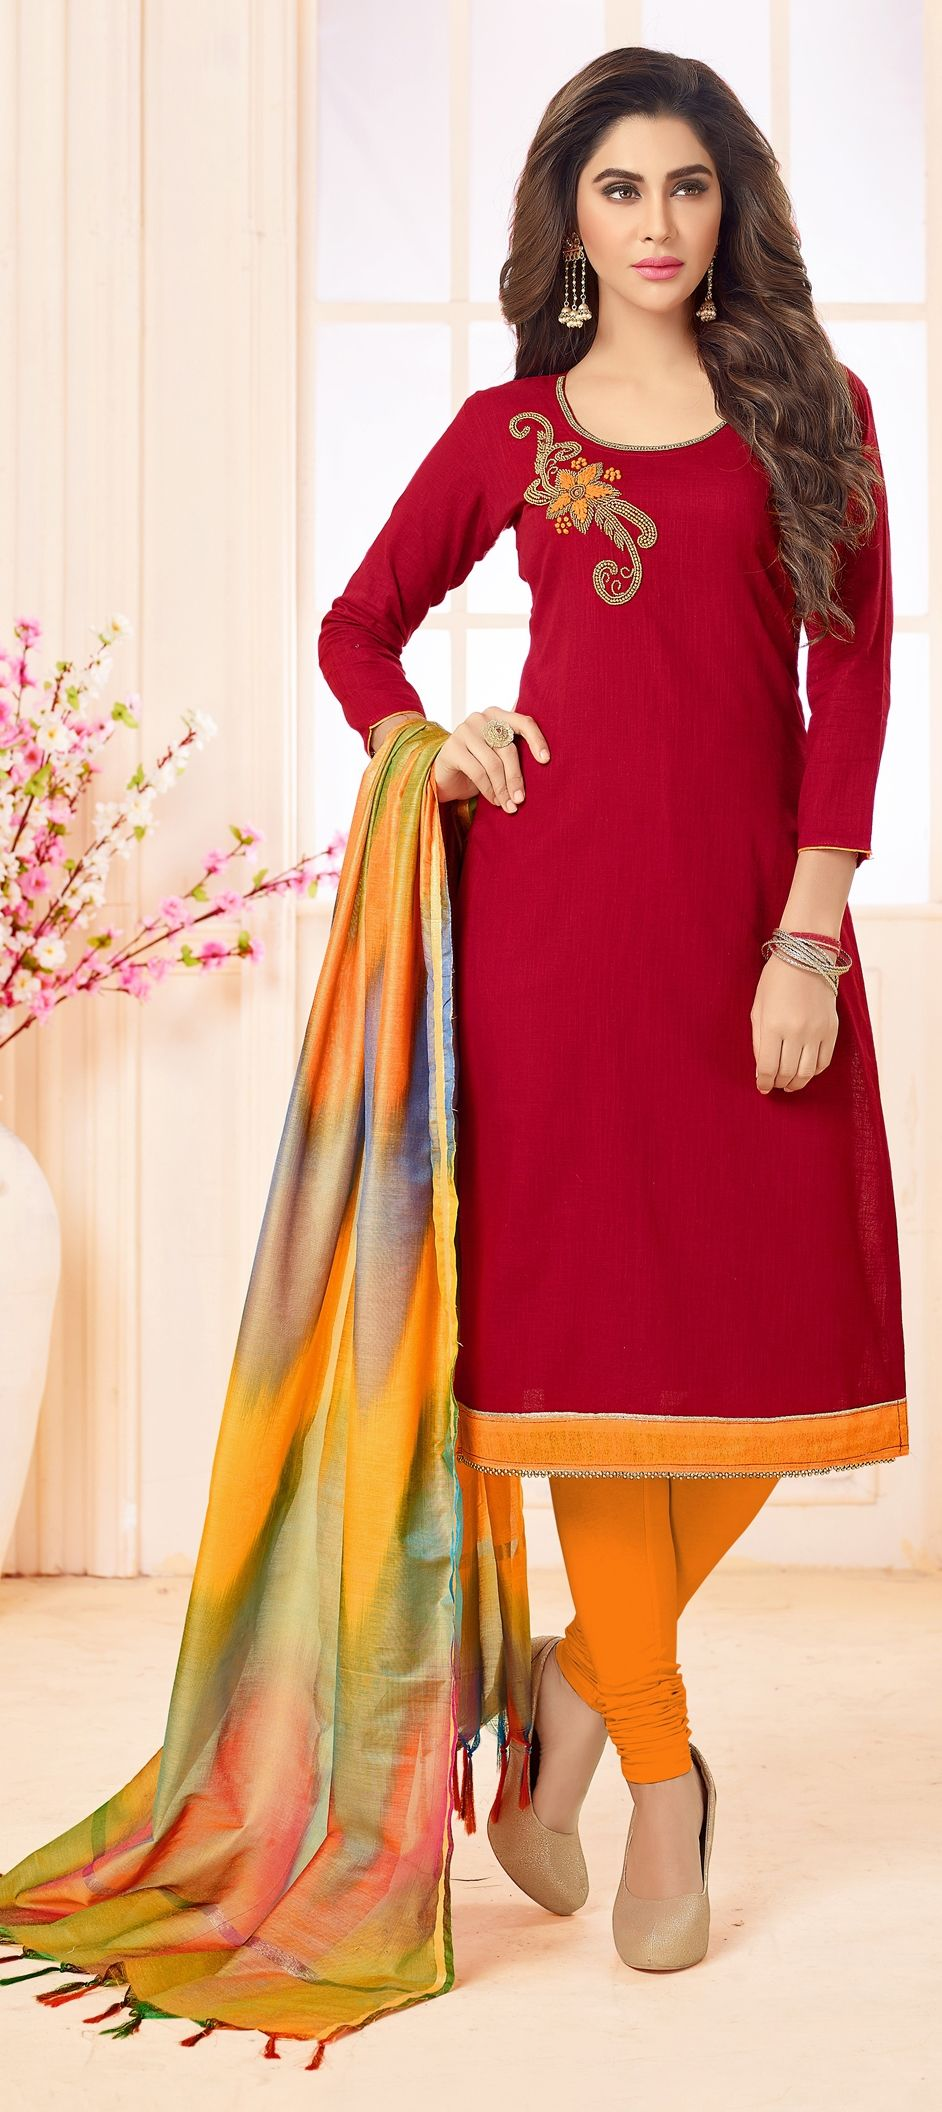 da087355f 1520451  Party Wear Red and Maroon color Cotton